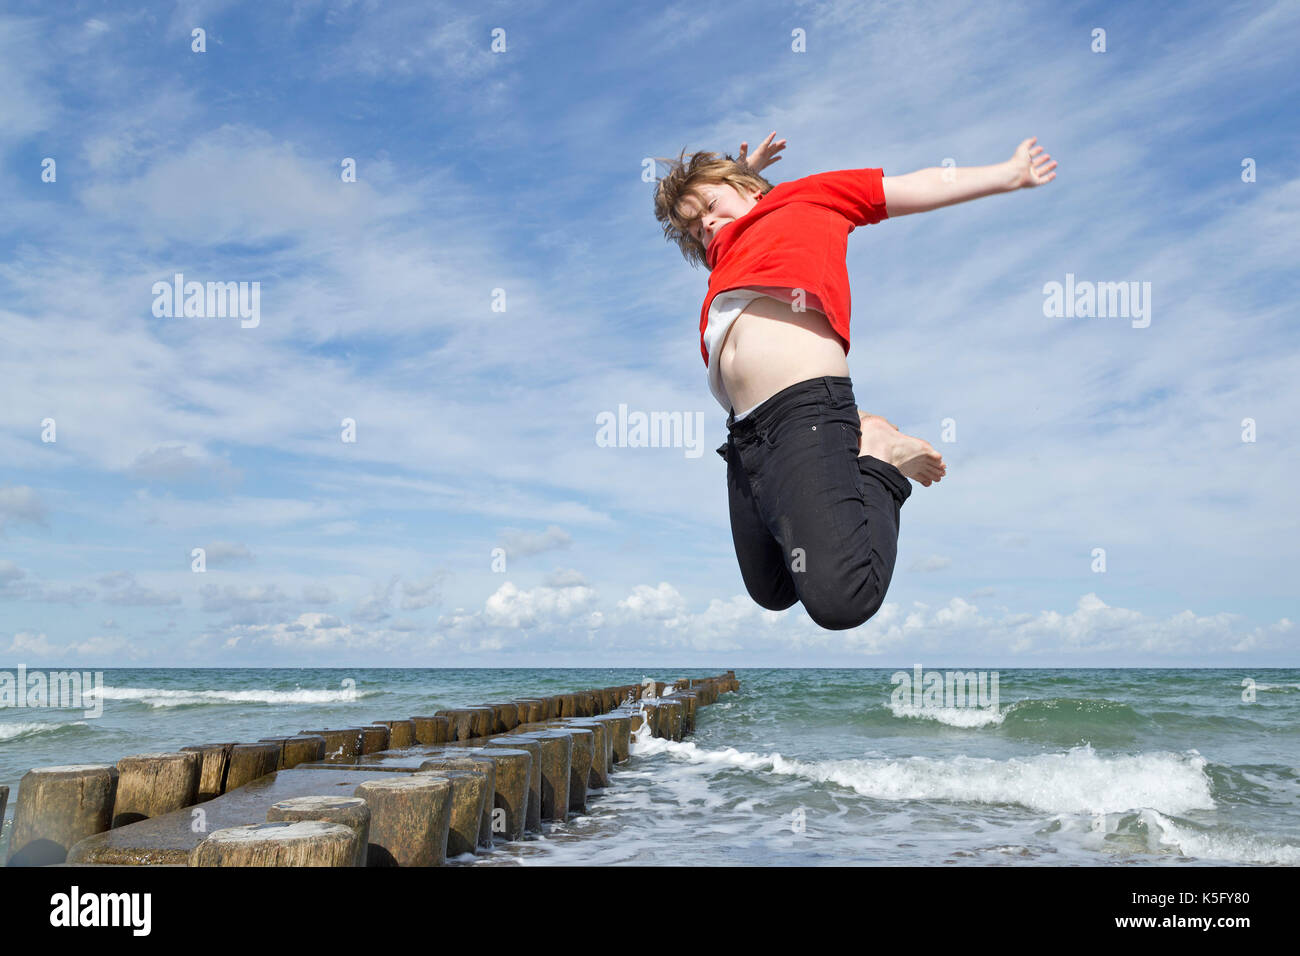 boy jumping at the beach, Ahrenshoop, Fischland, Mecklenburg-West Pomerania, Germany - Stock Image